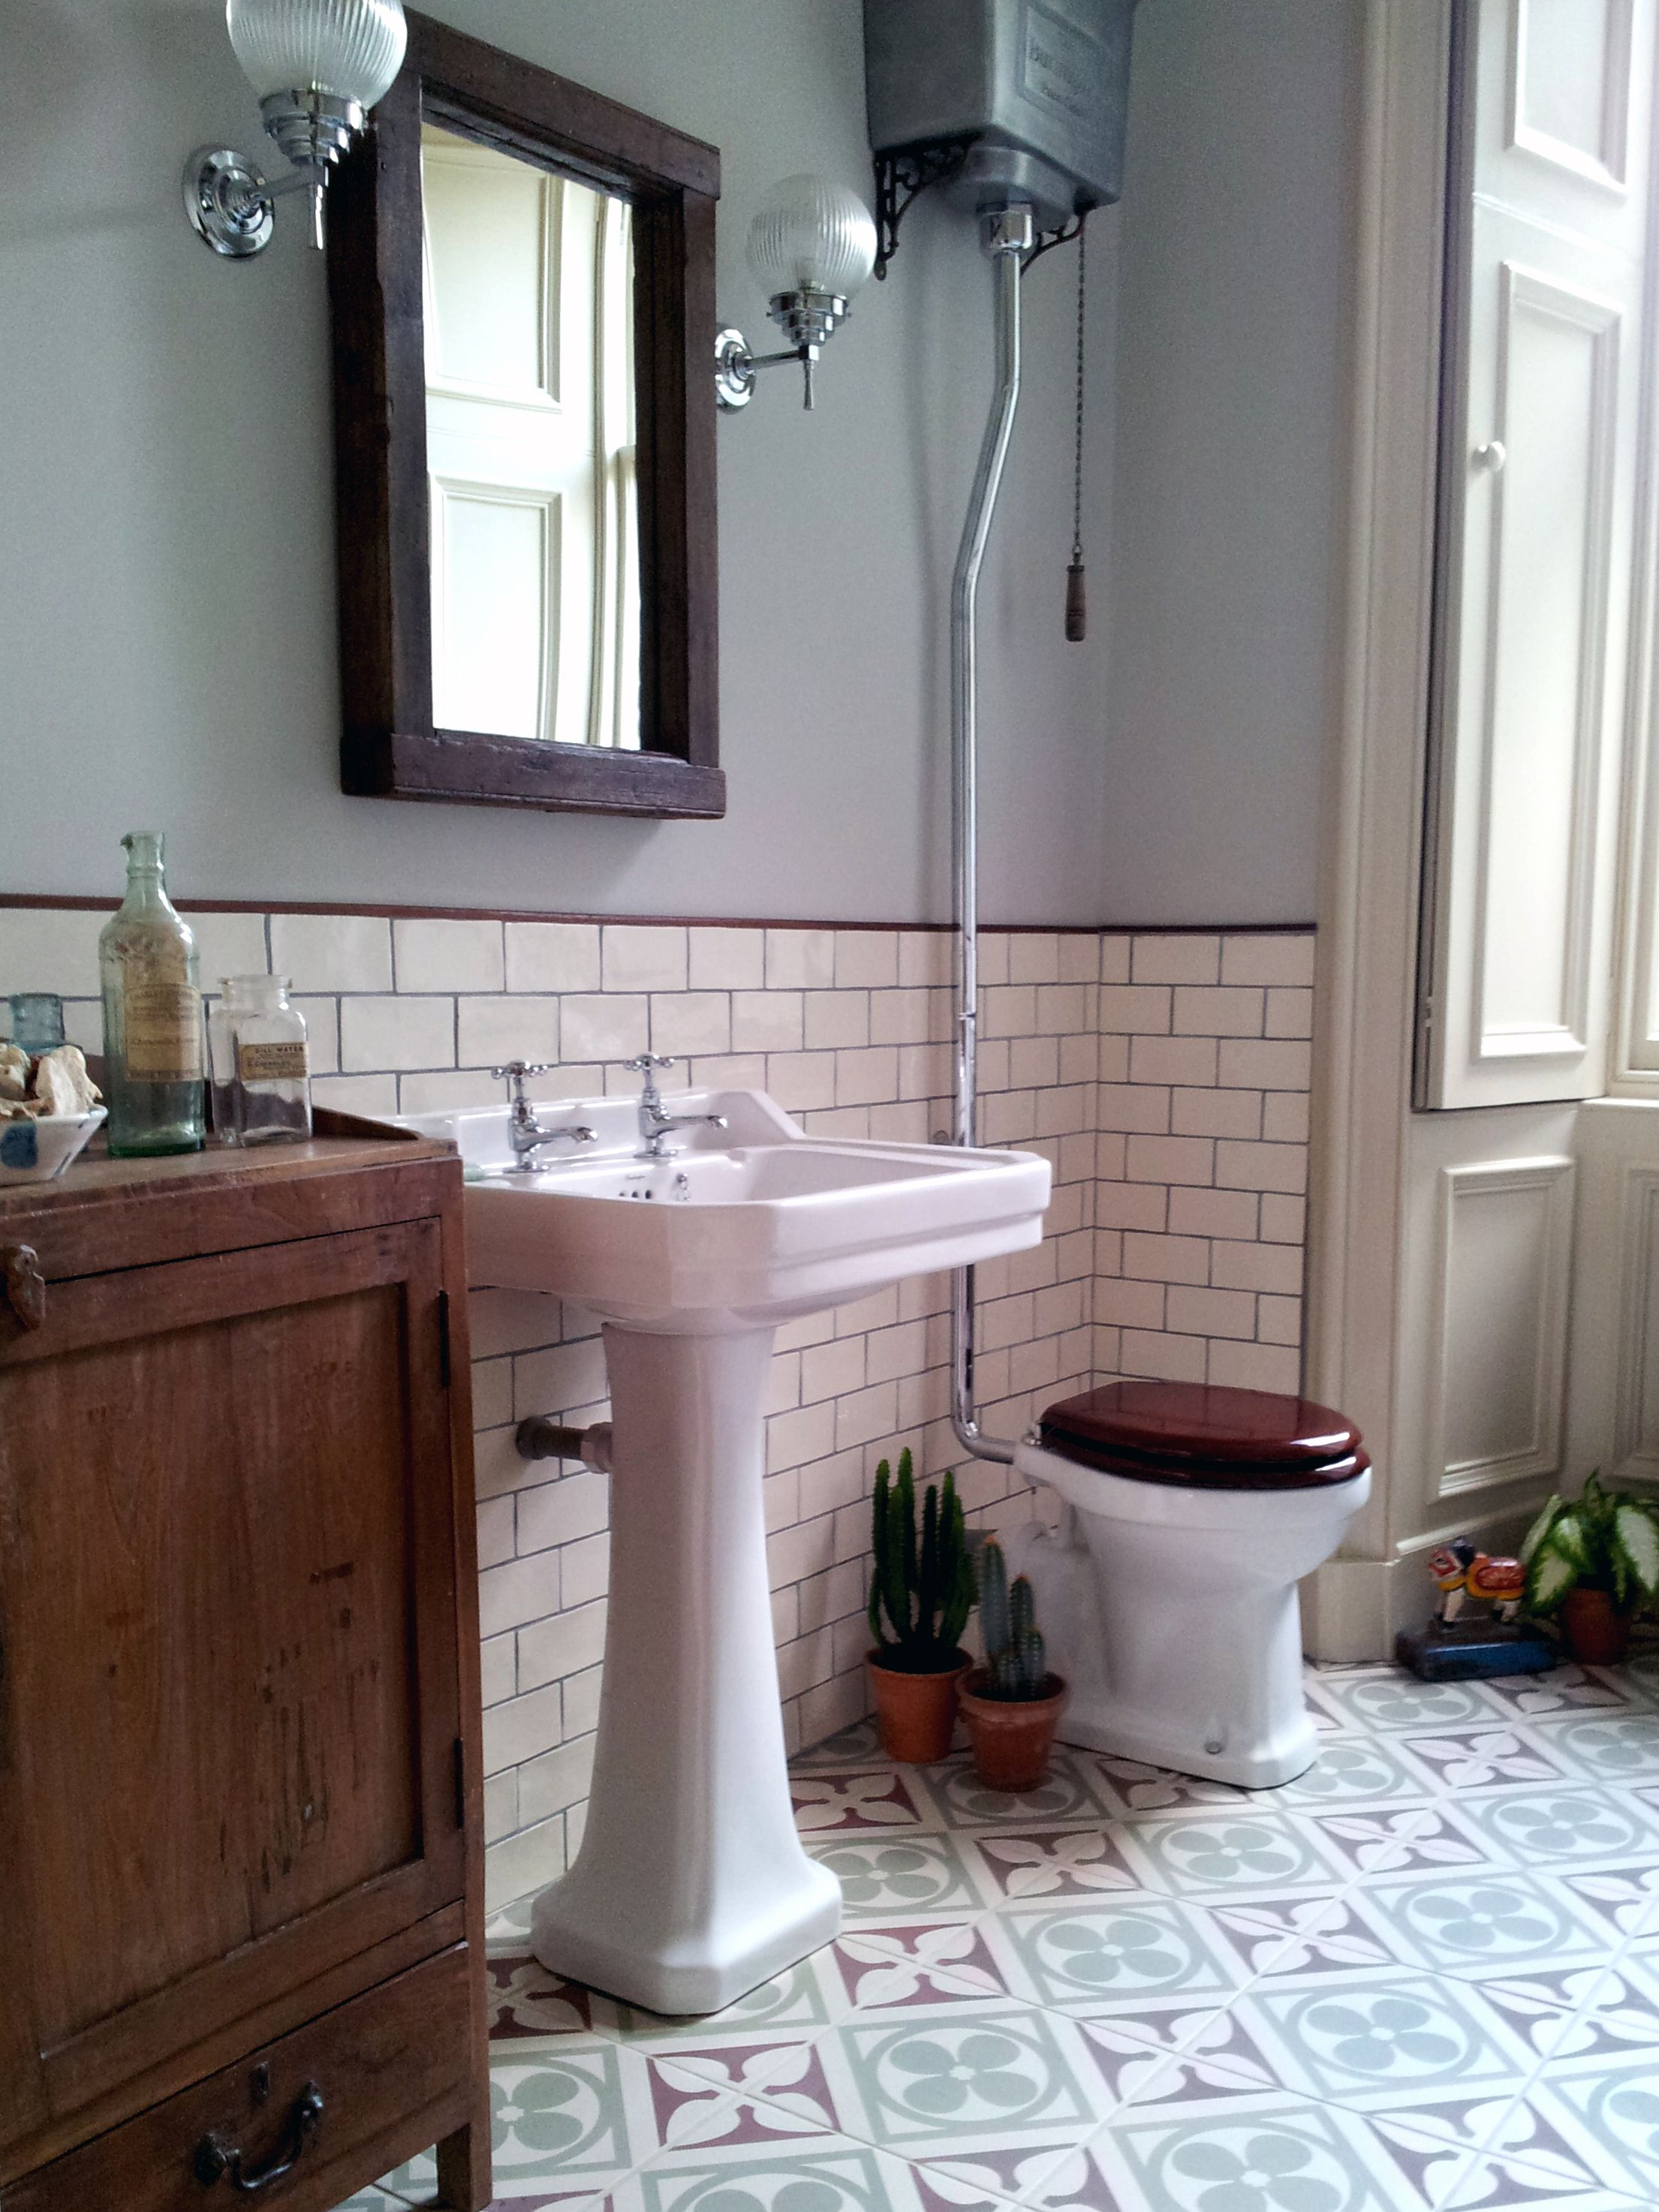 Retro Flooring Metro Tiles And A High Level Cistern Give This Bathroom A Beautiful Traditional